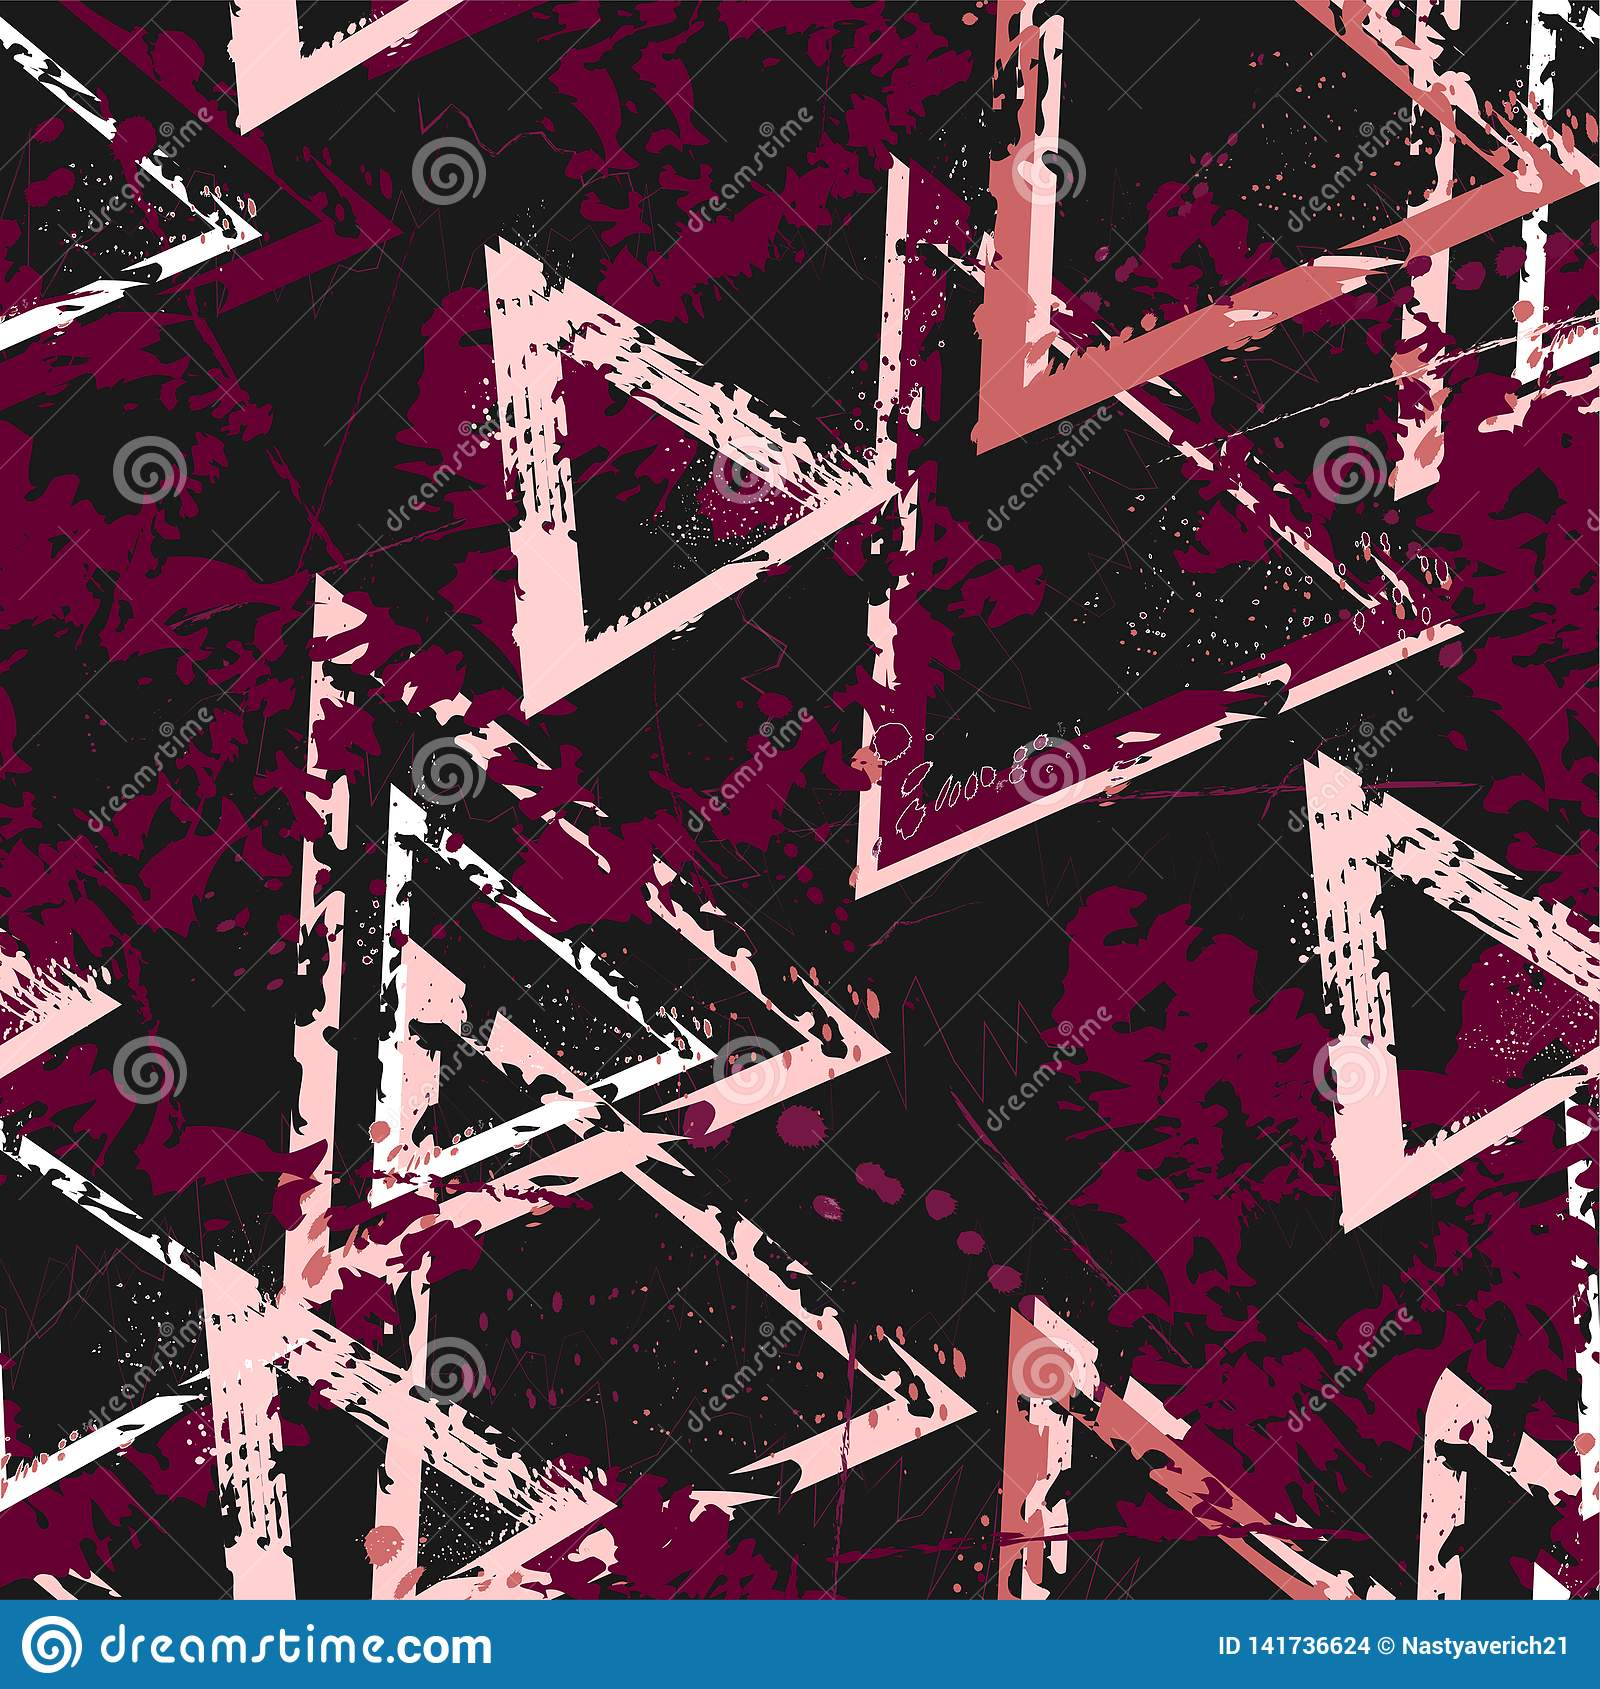 Abstract seamless geometric background with cracked texture. Grunge pattern for boys, girls, sport, fashion. Urban colorful wallpa